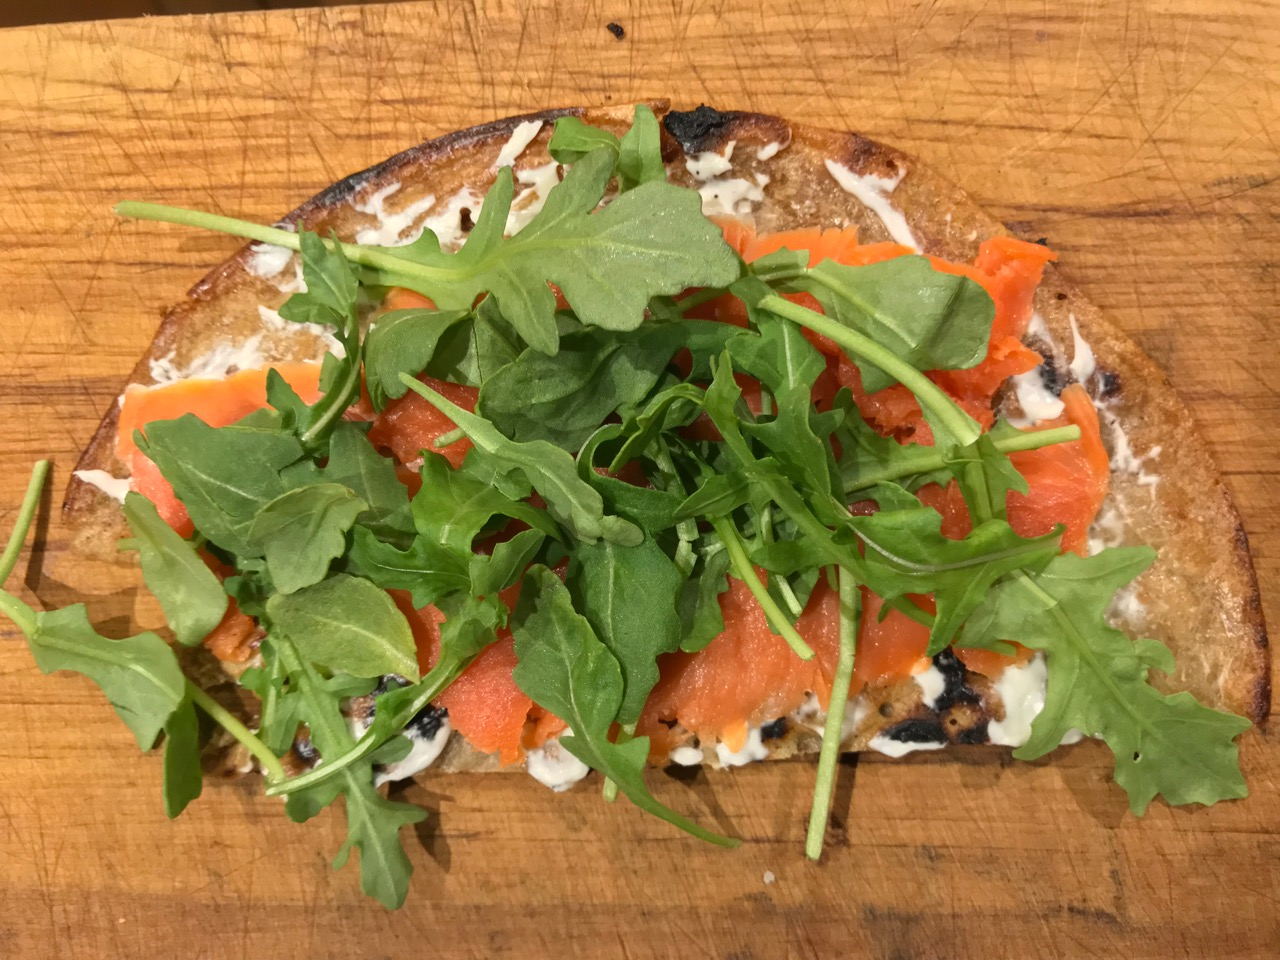 sourdough crumpet with lox